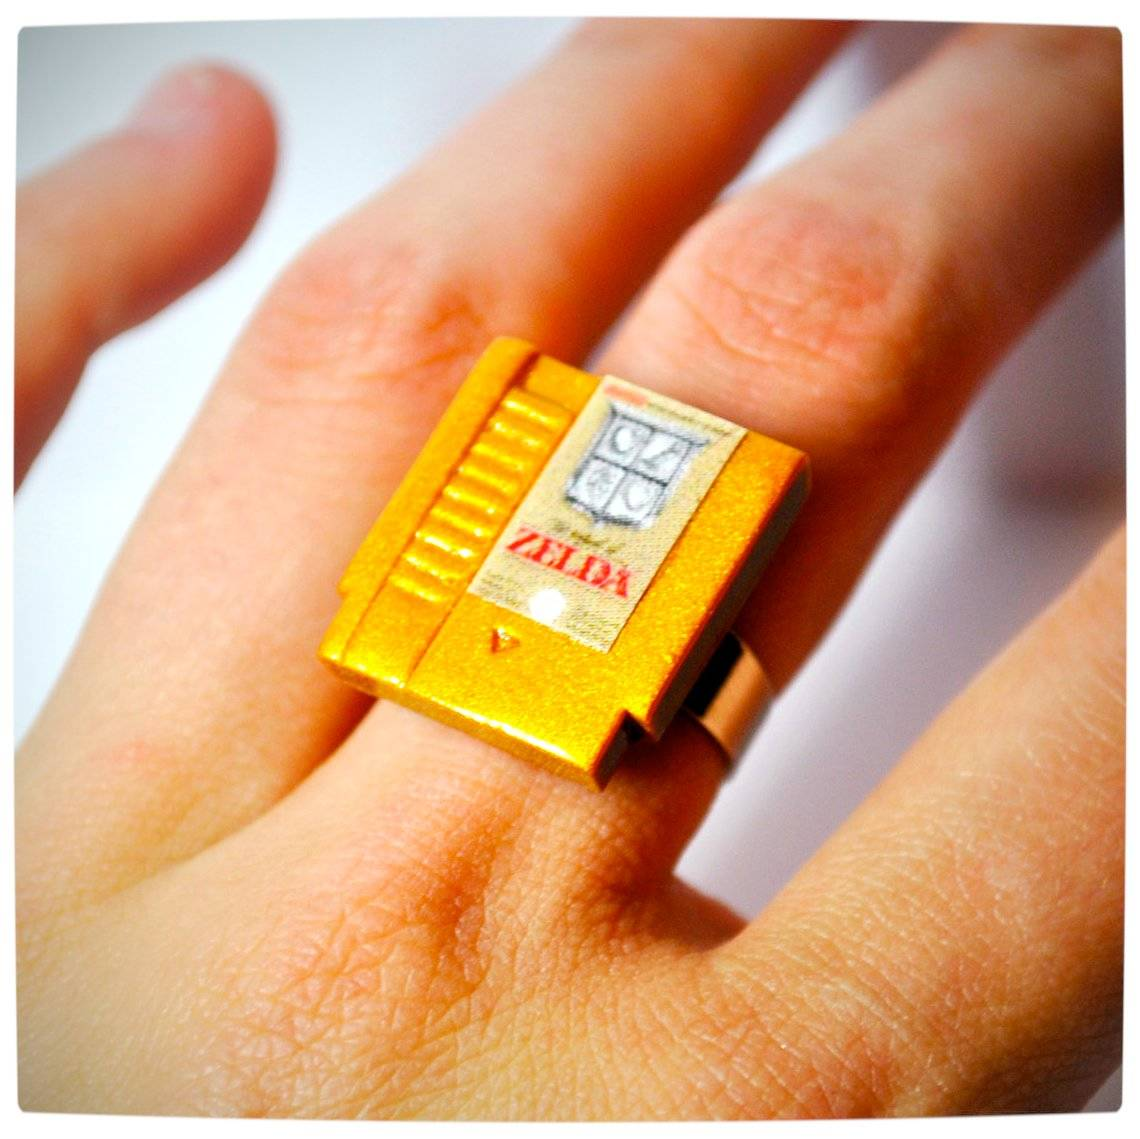 Vamers - Geekosphere - SUATMM - OhMyGeekness by Jess Firsoff - NES Cartridge Rings